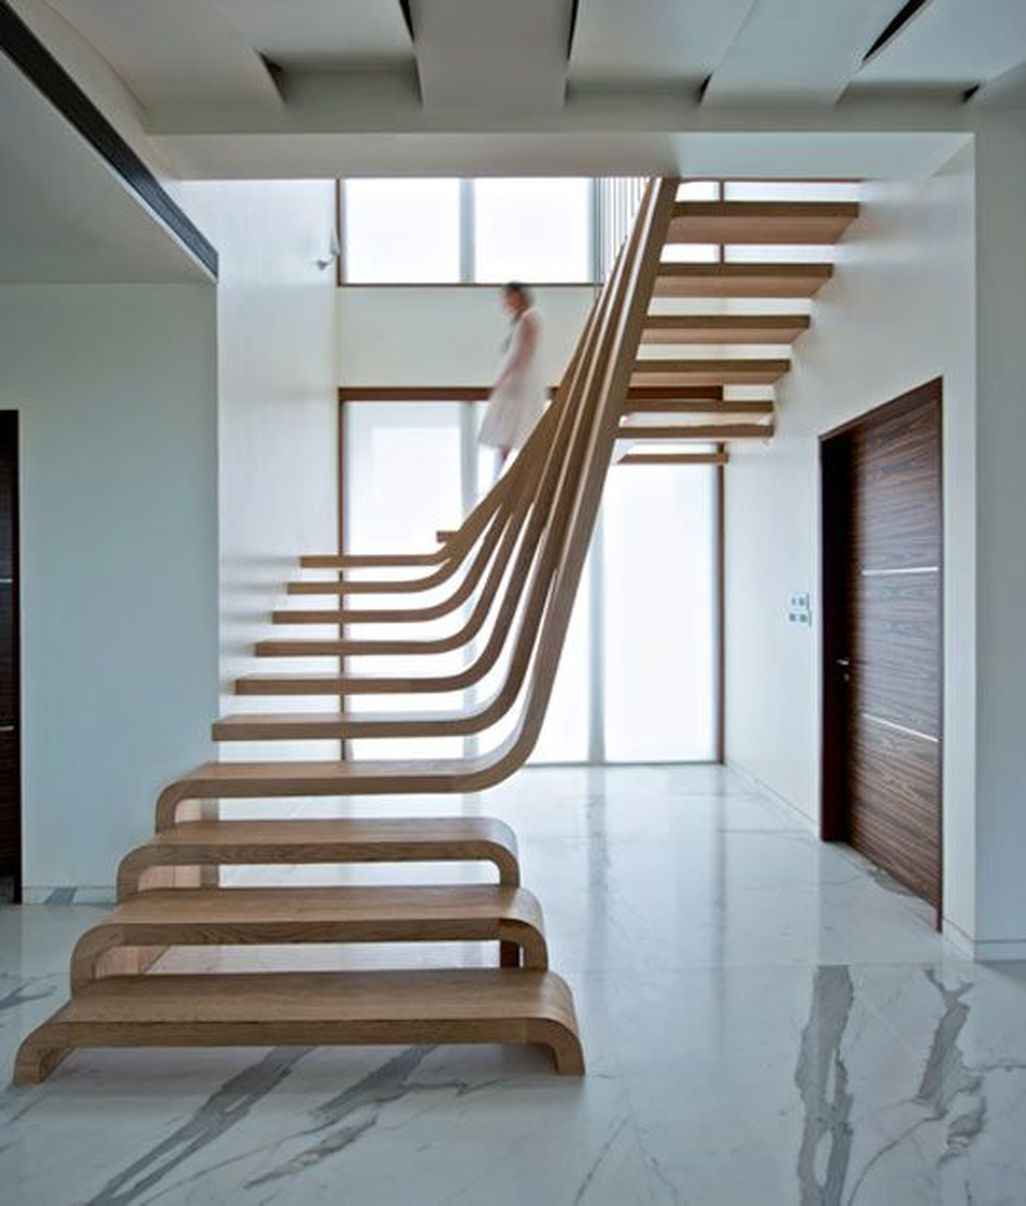 15 Incredible Mediterranean Staircase Designs That Will: 40 Amazing Wooden Stairs For Your Home